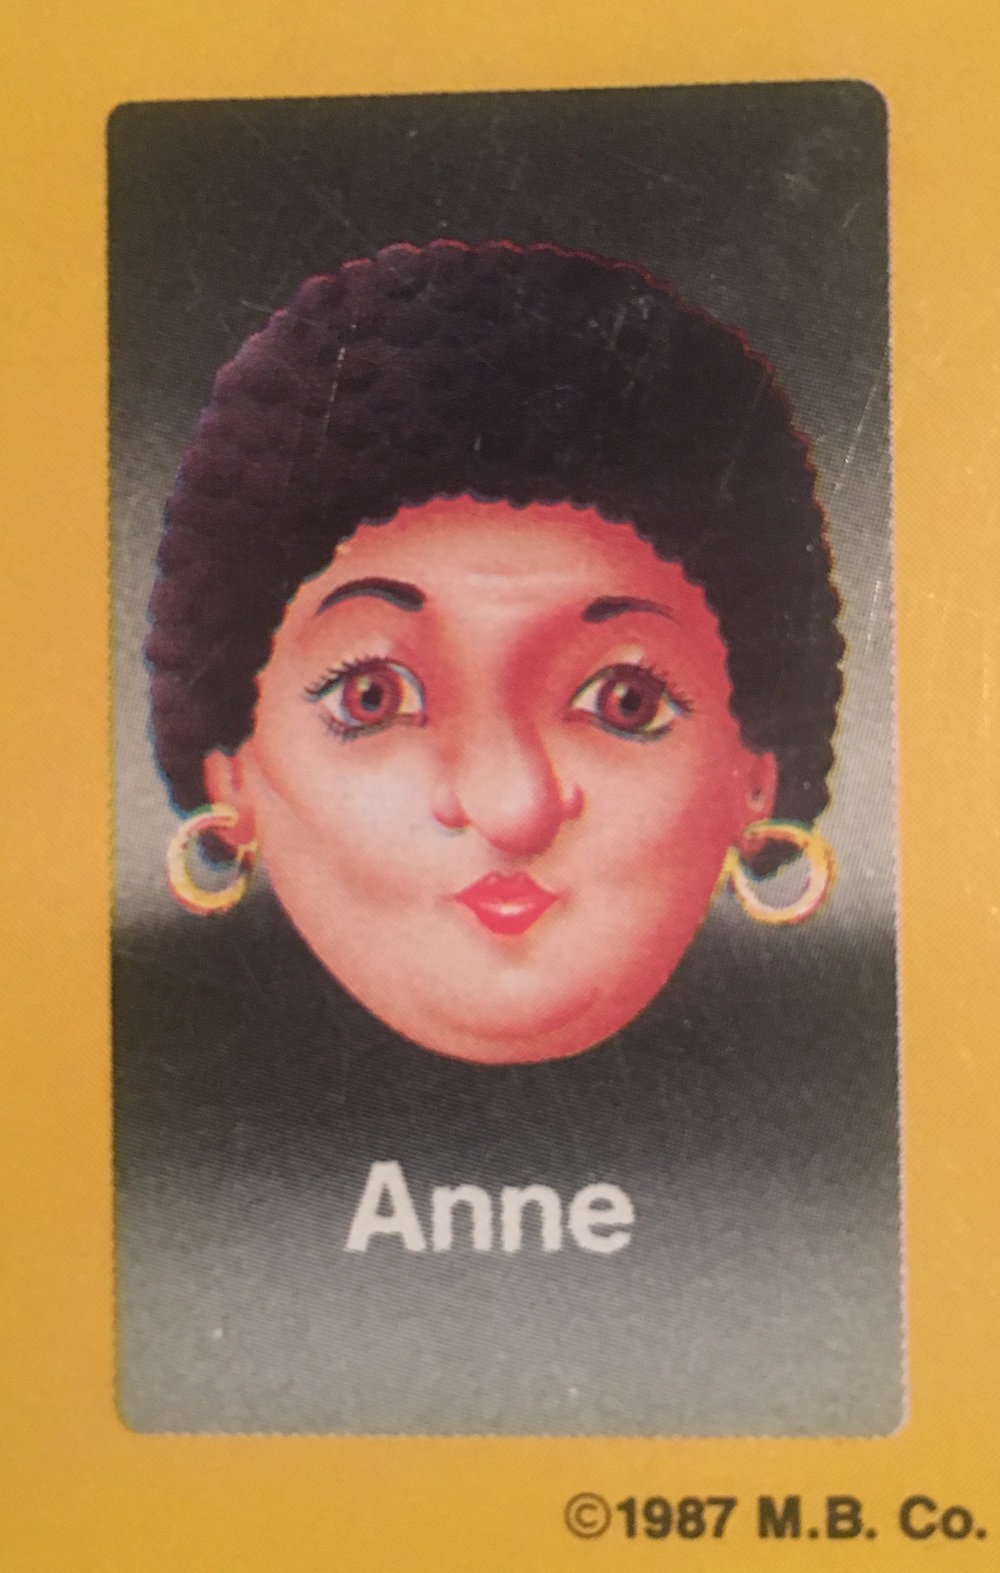 - Anne was in the midst of her final year at NYU when she found out she would be a face in Guess Who?®. At the time she was pre-med, applying to medical school with the hope of beginning the subsequent fall. She decided to take a few weeks off to go on the Guess Who?® promotional tour with the other faces, and to have a little bit of fun with her recently filled bank account. Five years later, she finally returned to NYU to finish her degree. During this extended break, she realized she was meant to be in front of an audience, and so transitioned into their theater program, graduating a couple of years later. She went on to a successful career off-Broadway, and is still a workingactress in New York.